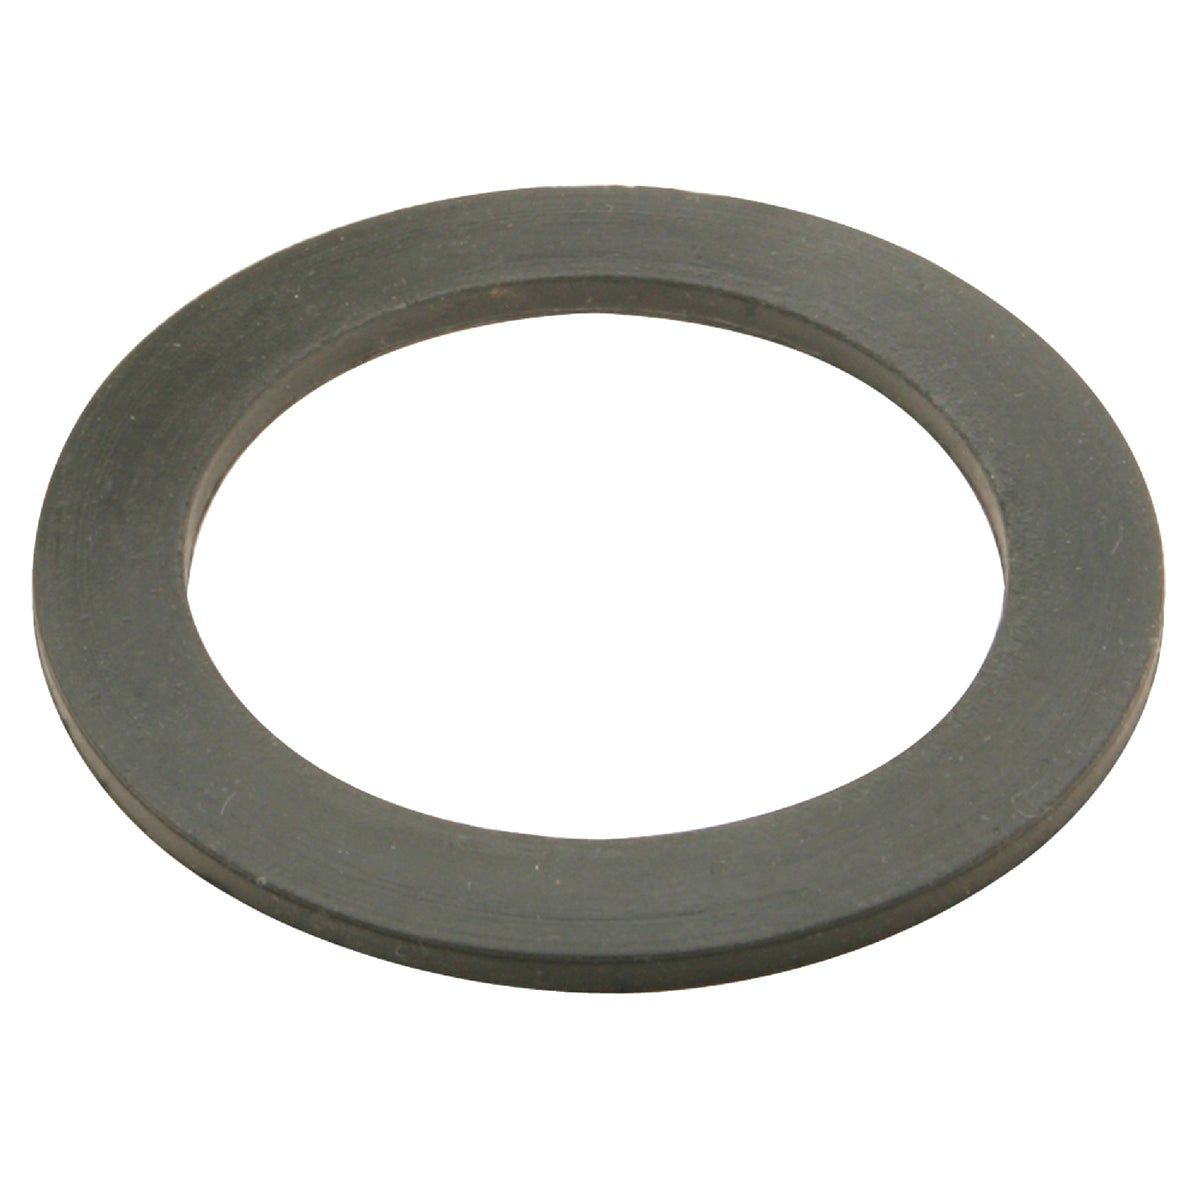 RUBBER TAILPIECE WASHER - 443915 by Plumb Pak/keeney Mfg